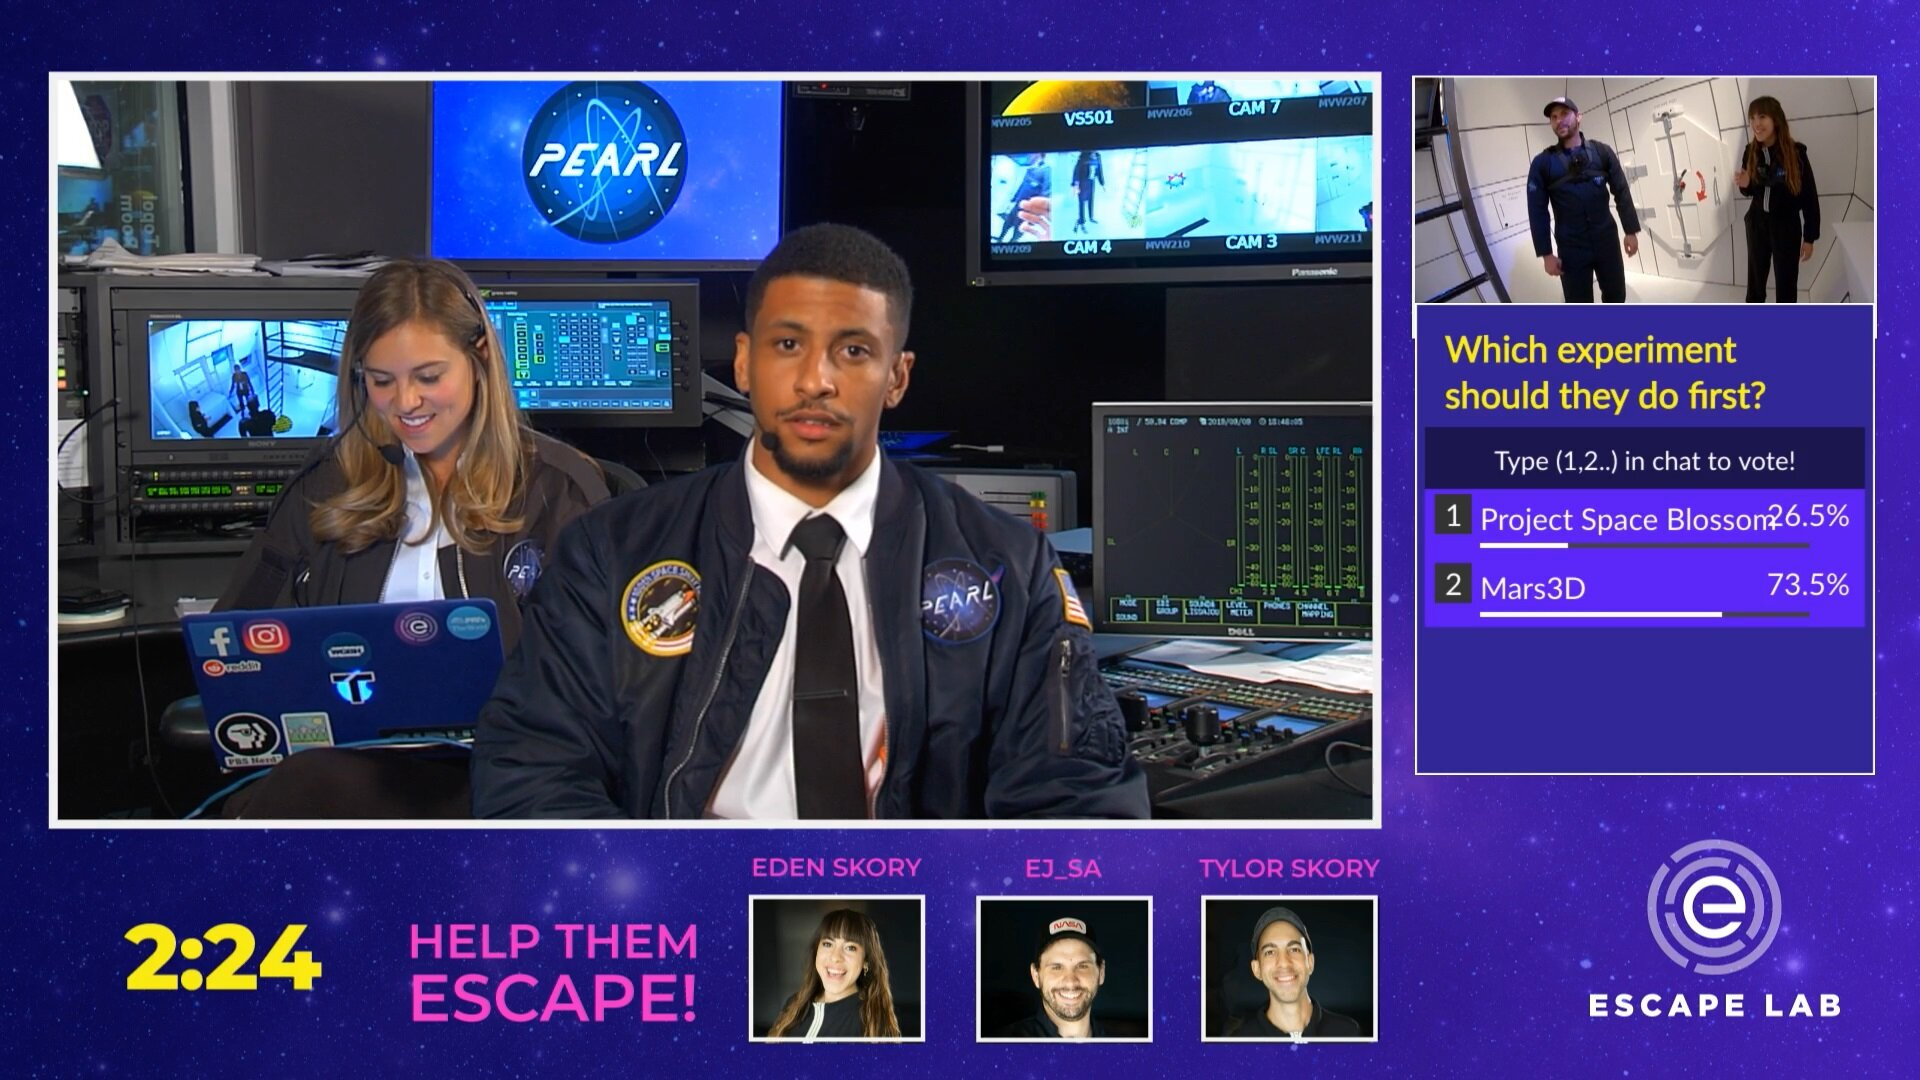 Escape Lab WGBH - featured on Twitch - Viewed by over 43,000 live participants, Justin plays the charismatic host of a science game show where YouTube and Twitch influencers compete to return to earth safely!